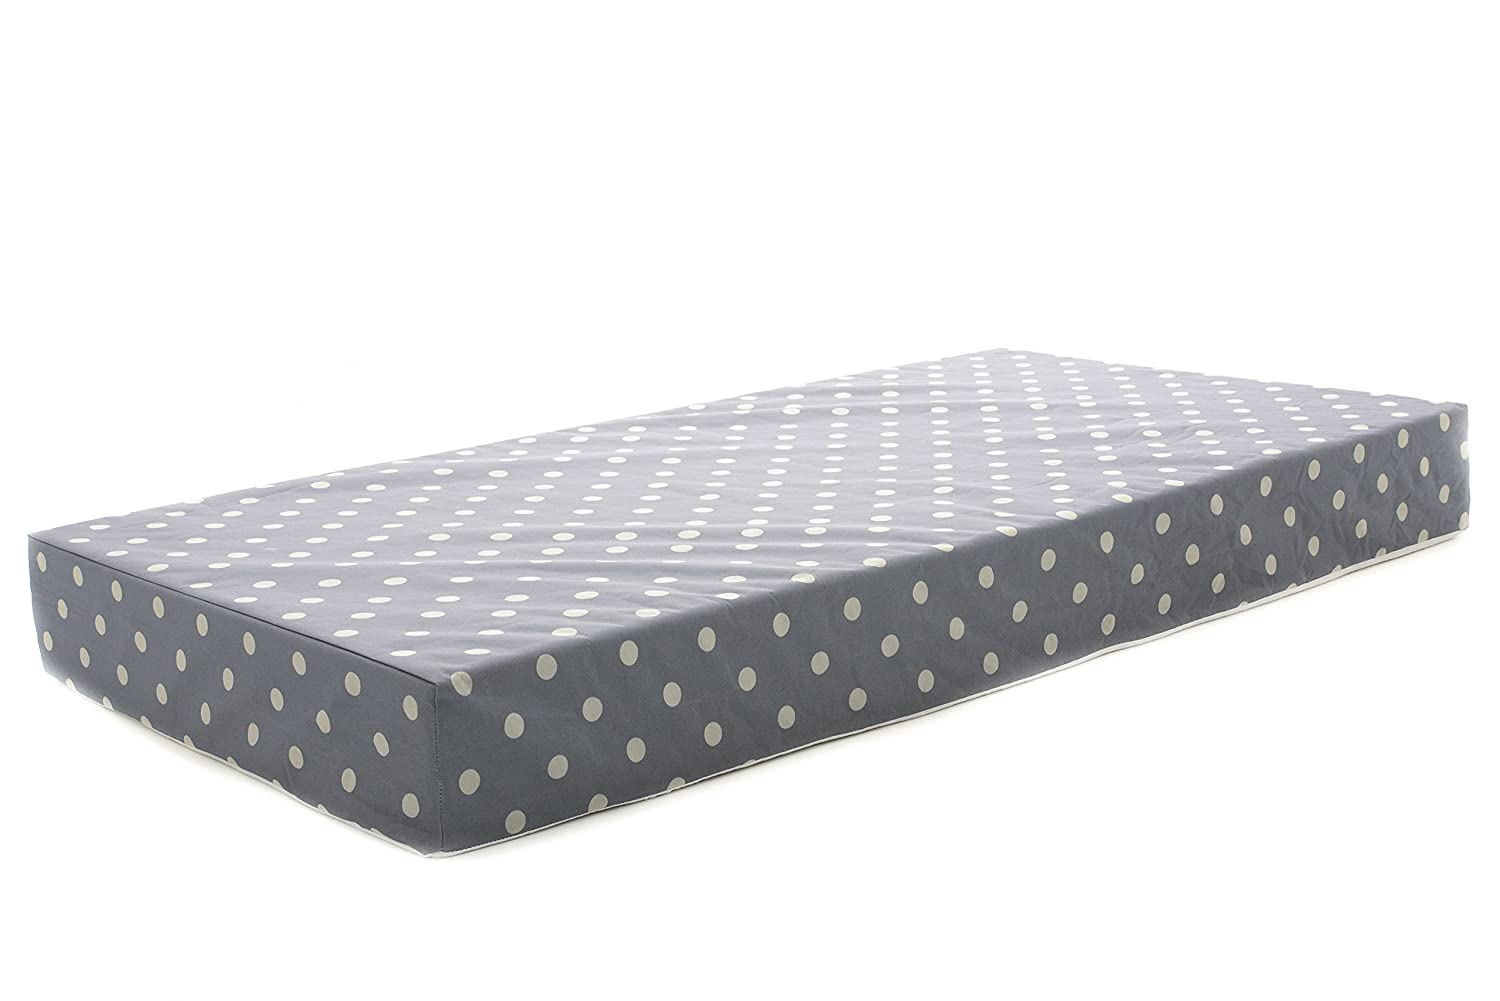 Best baby crib mattress 2013 - Milliard Hypoallergenic Baby Crib Mattress Or Toddler Bed Mattress With Waterproof Encasement